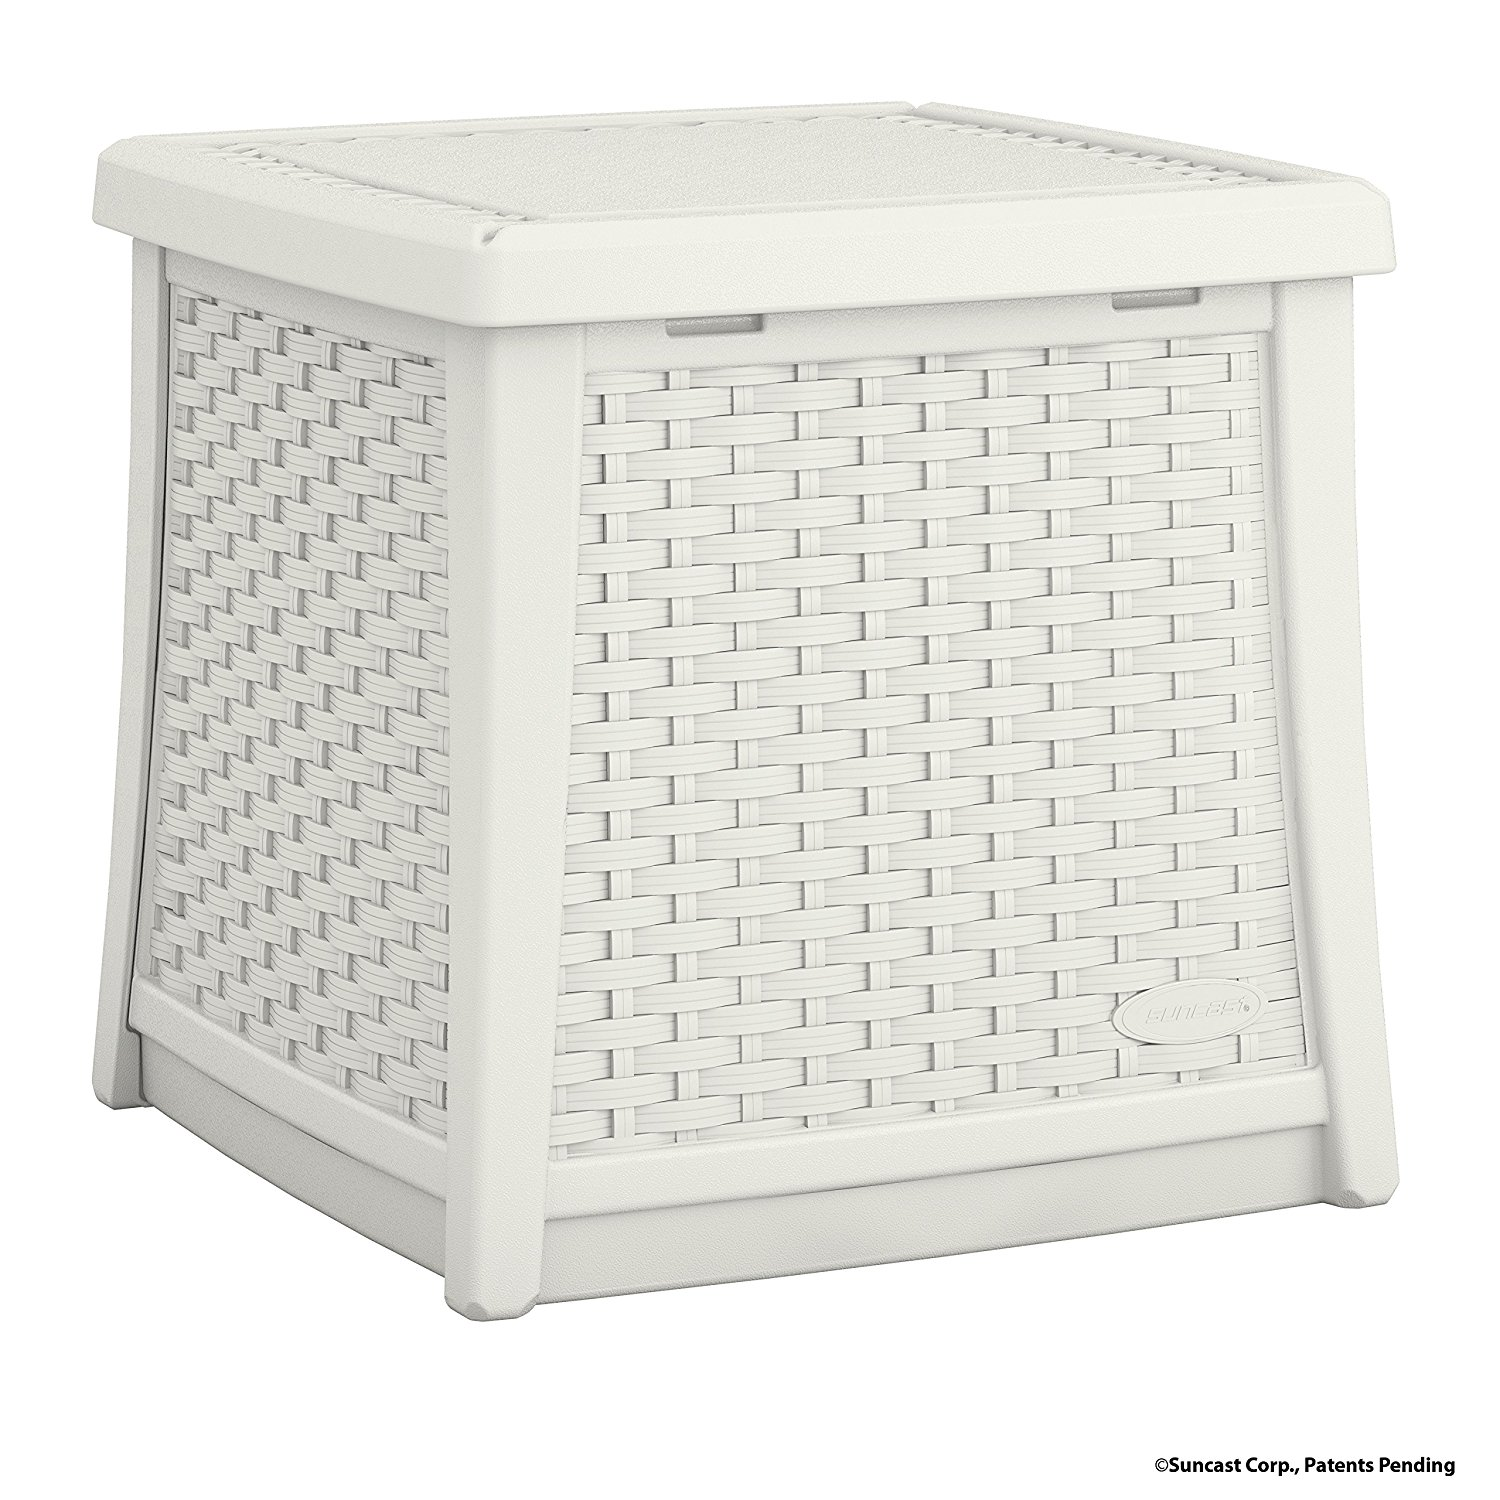 Suncast ELEMENTS End Table with Storage, White